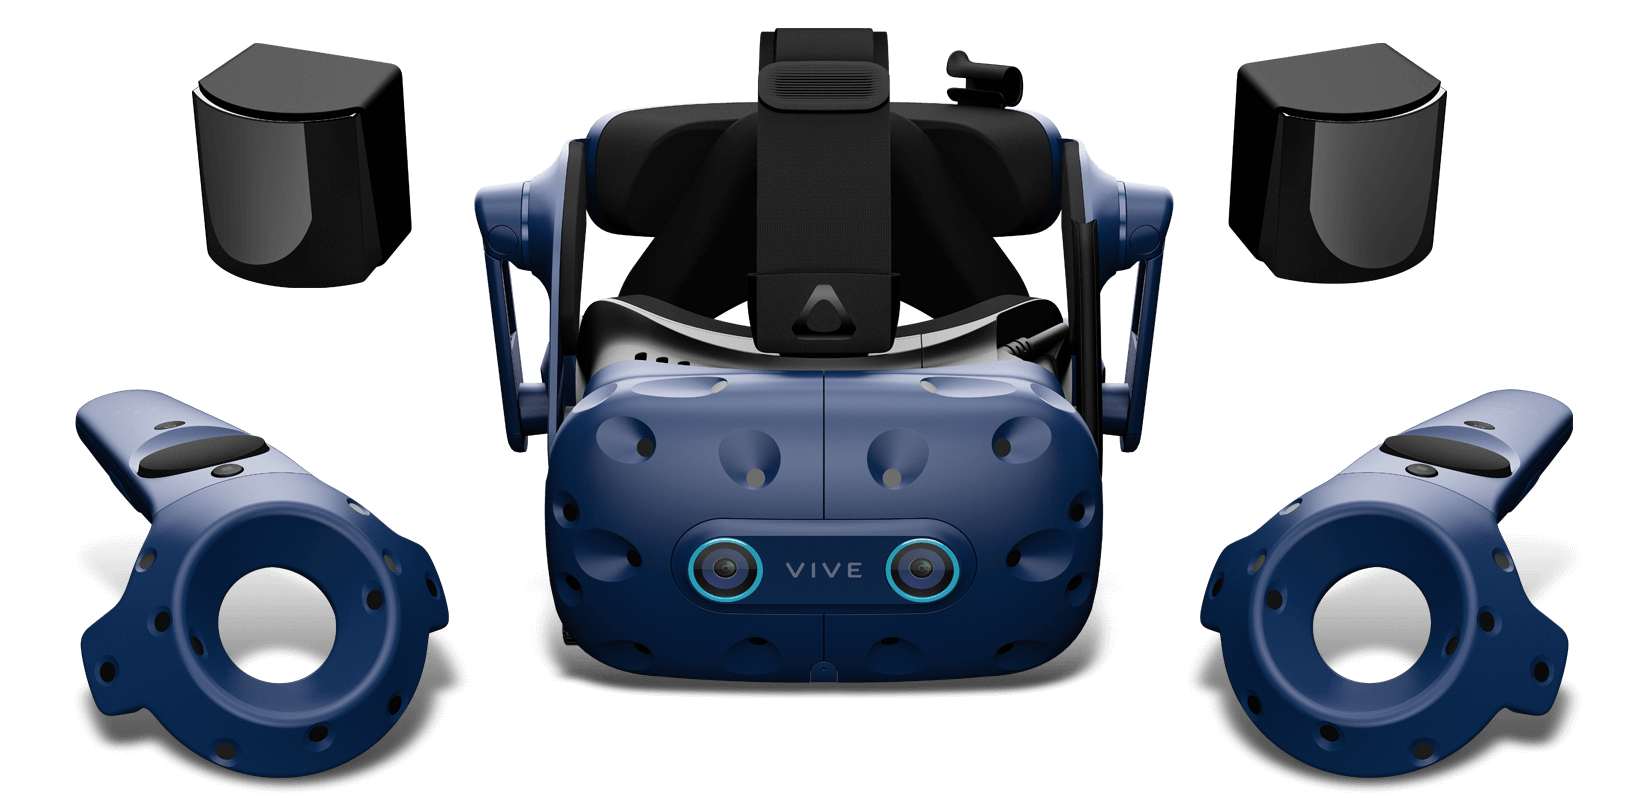 HTC Vive Announces New Vive Pro Eye Bundle For Enterprise Customers